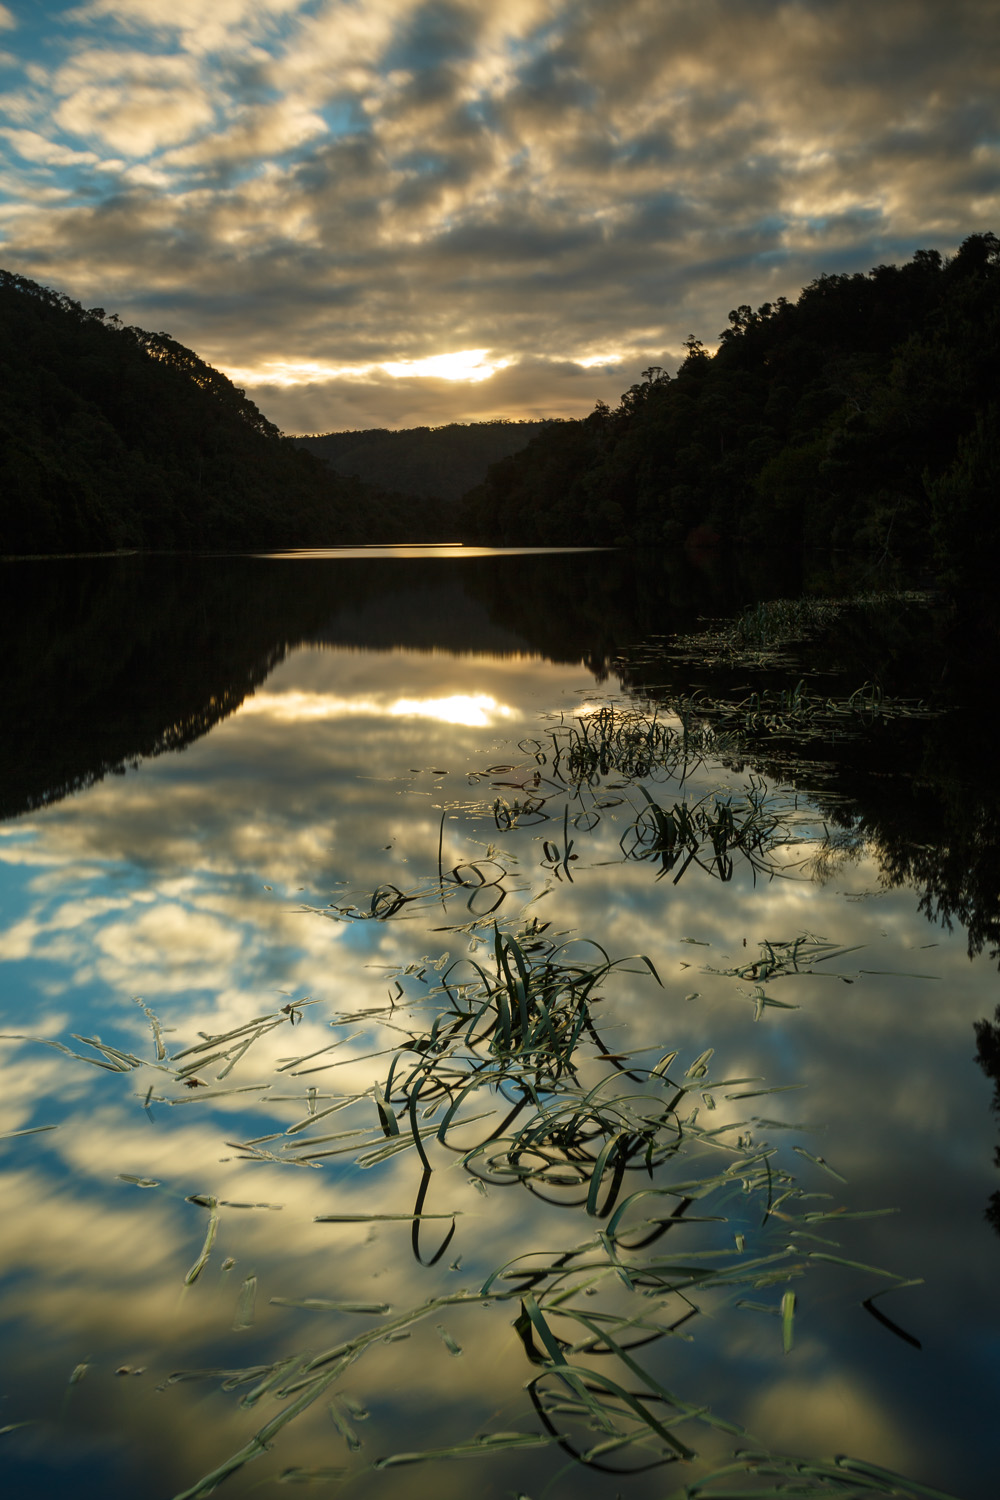 Sunset along the Pieman River at Corinna